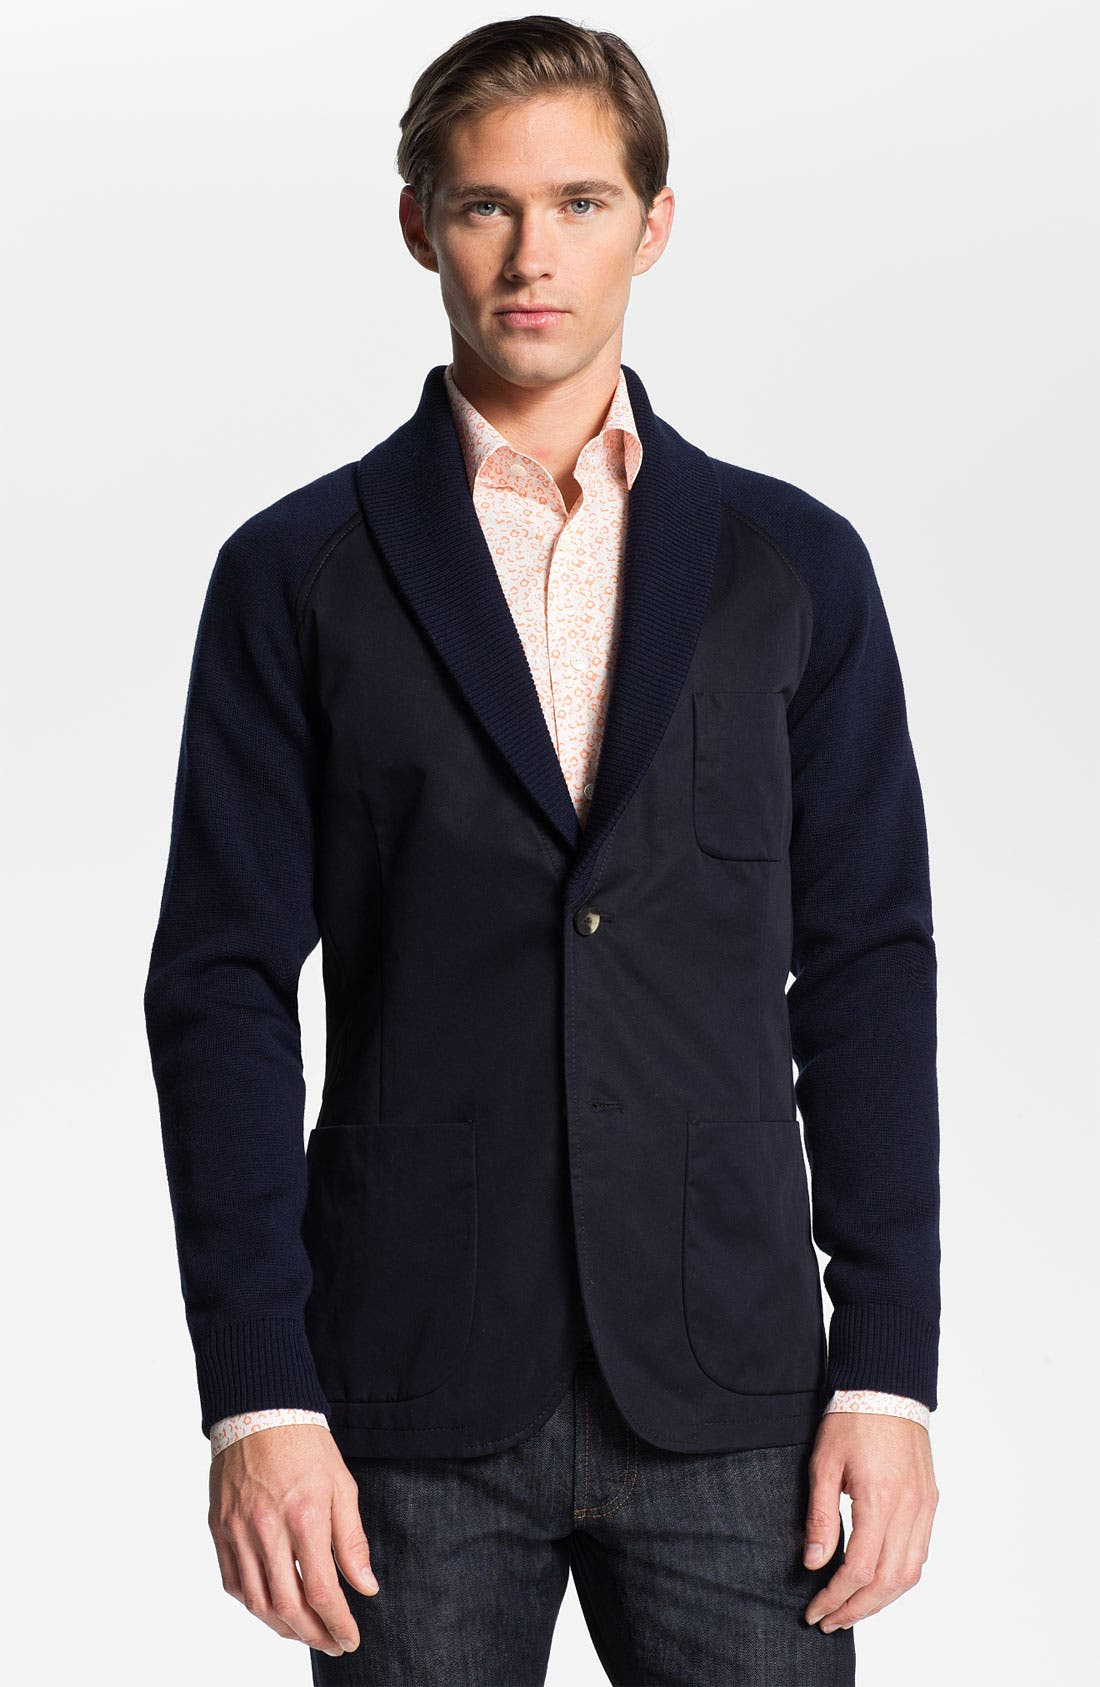 Main Image - Salvatore Ferragamo Shawl Collar Sportcoat with Knit Trim